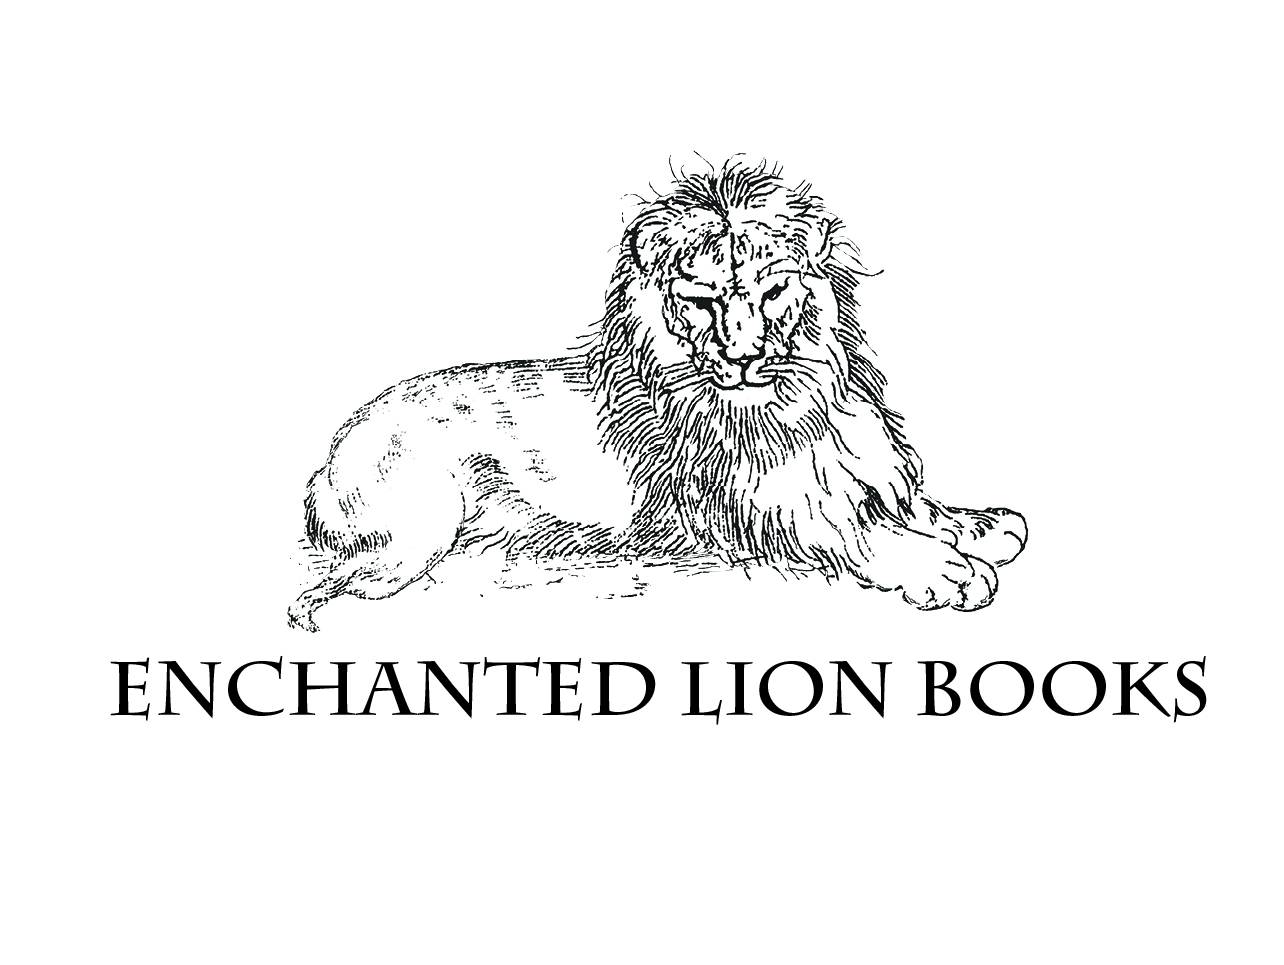 Enchanted Lion Books